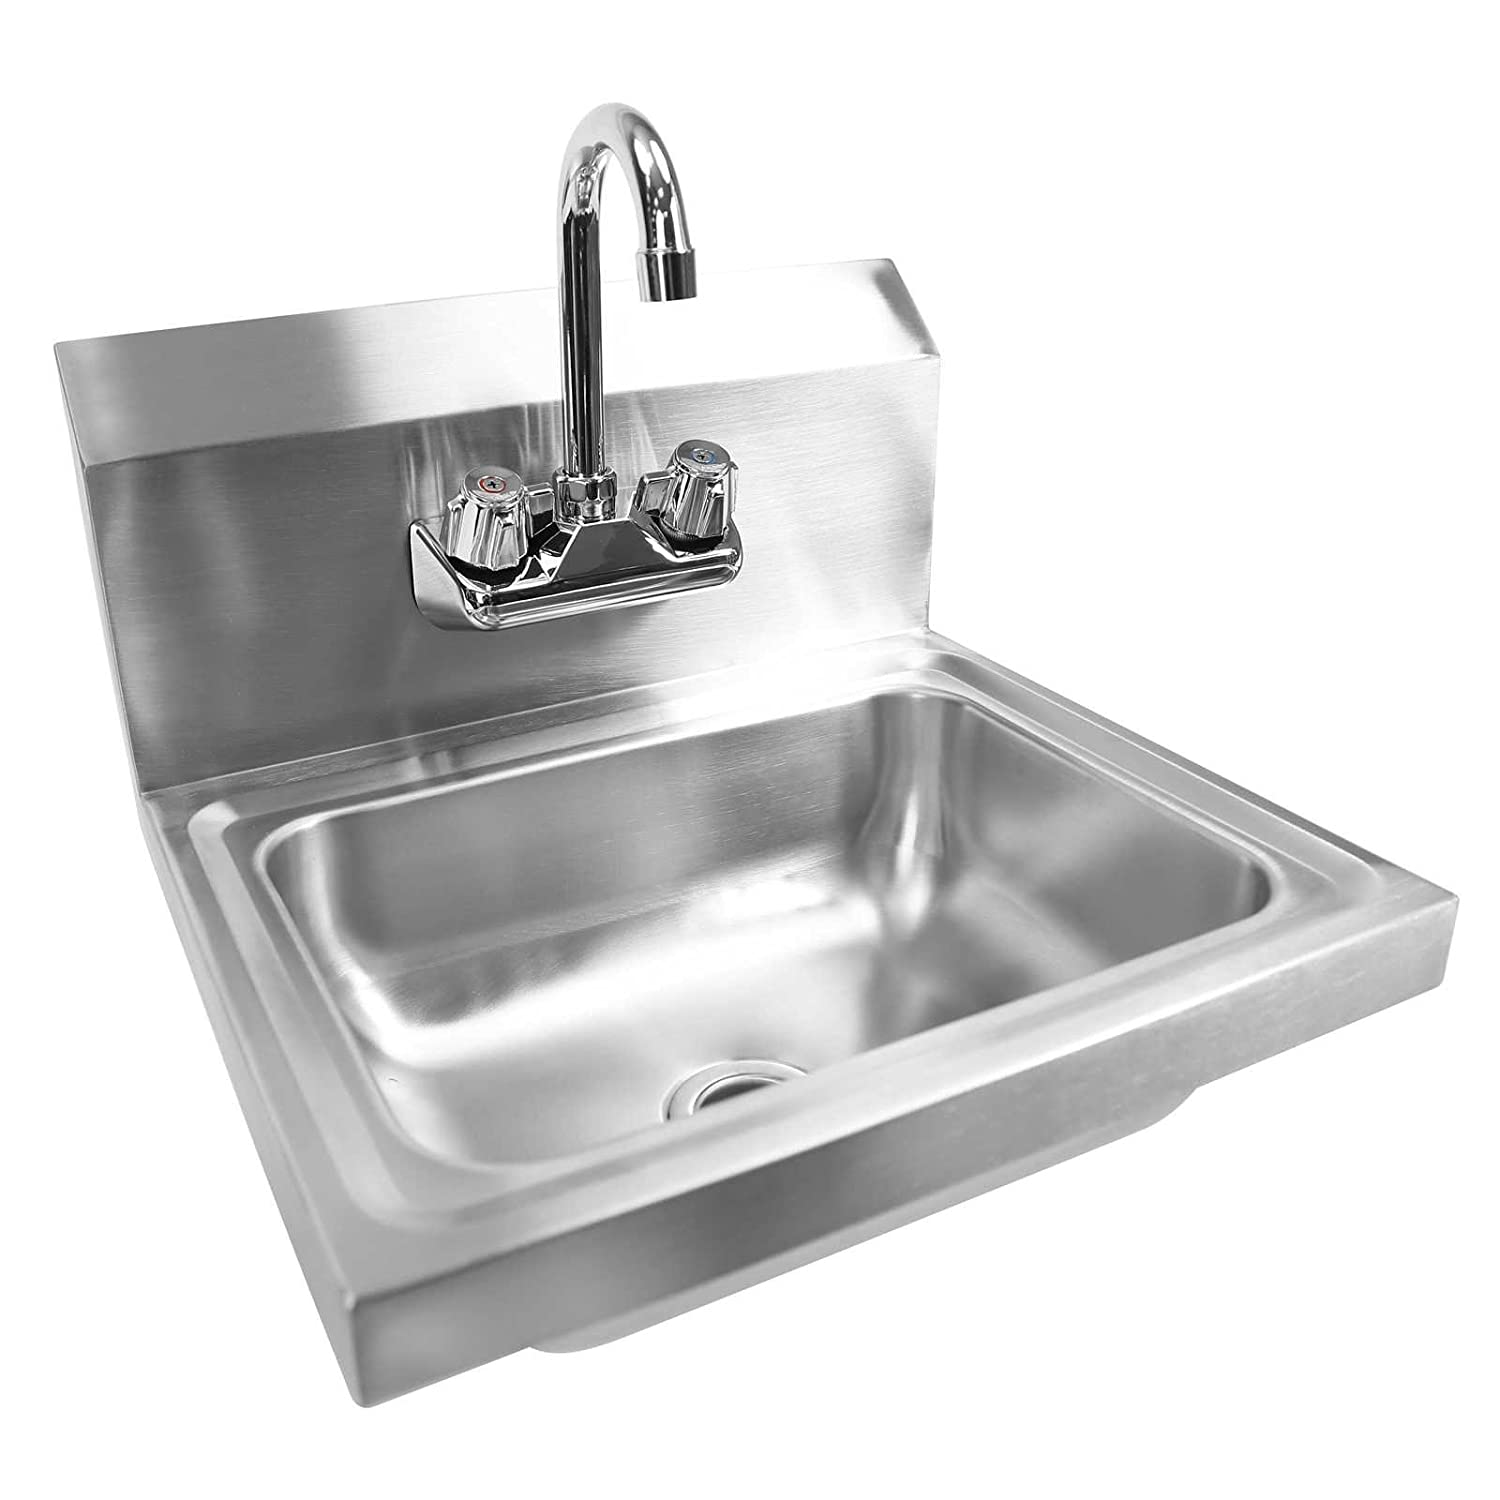 gridmann mercial nsf stainless steel sink wall mount hand